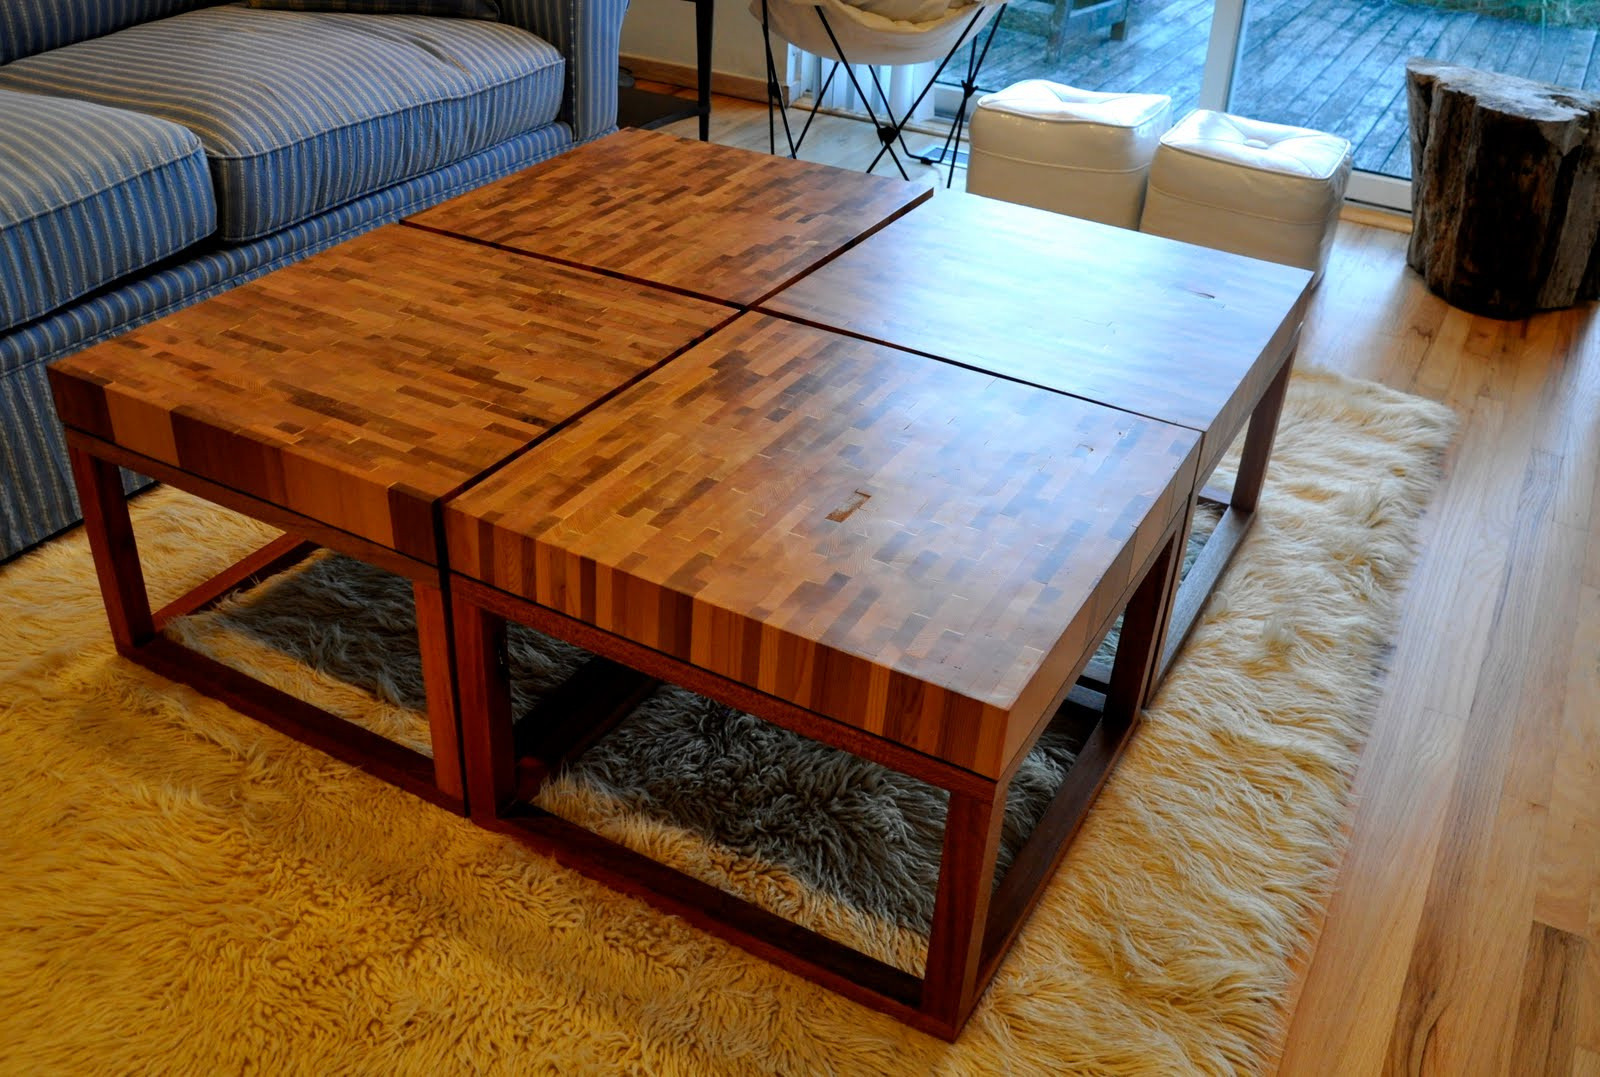 Hanselzedesign Cedar Coffee Tables With Satin Finish